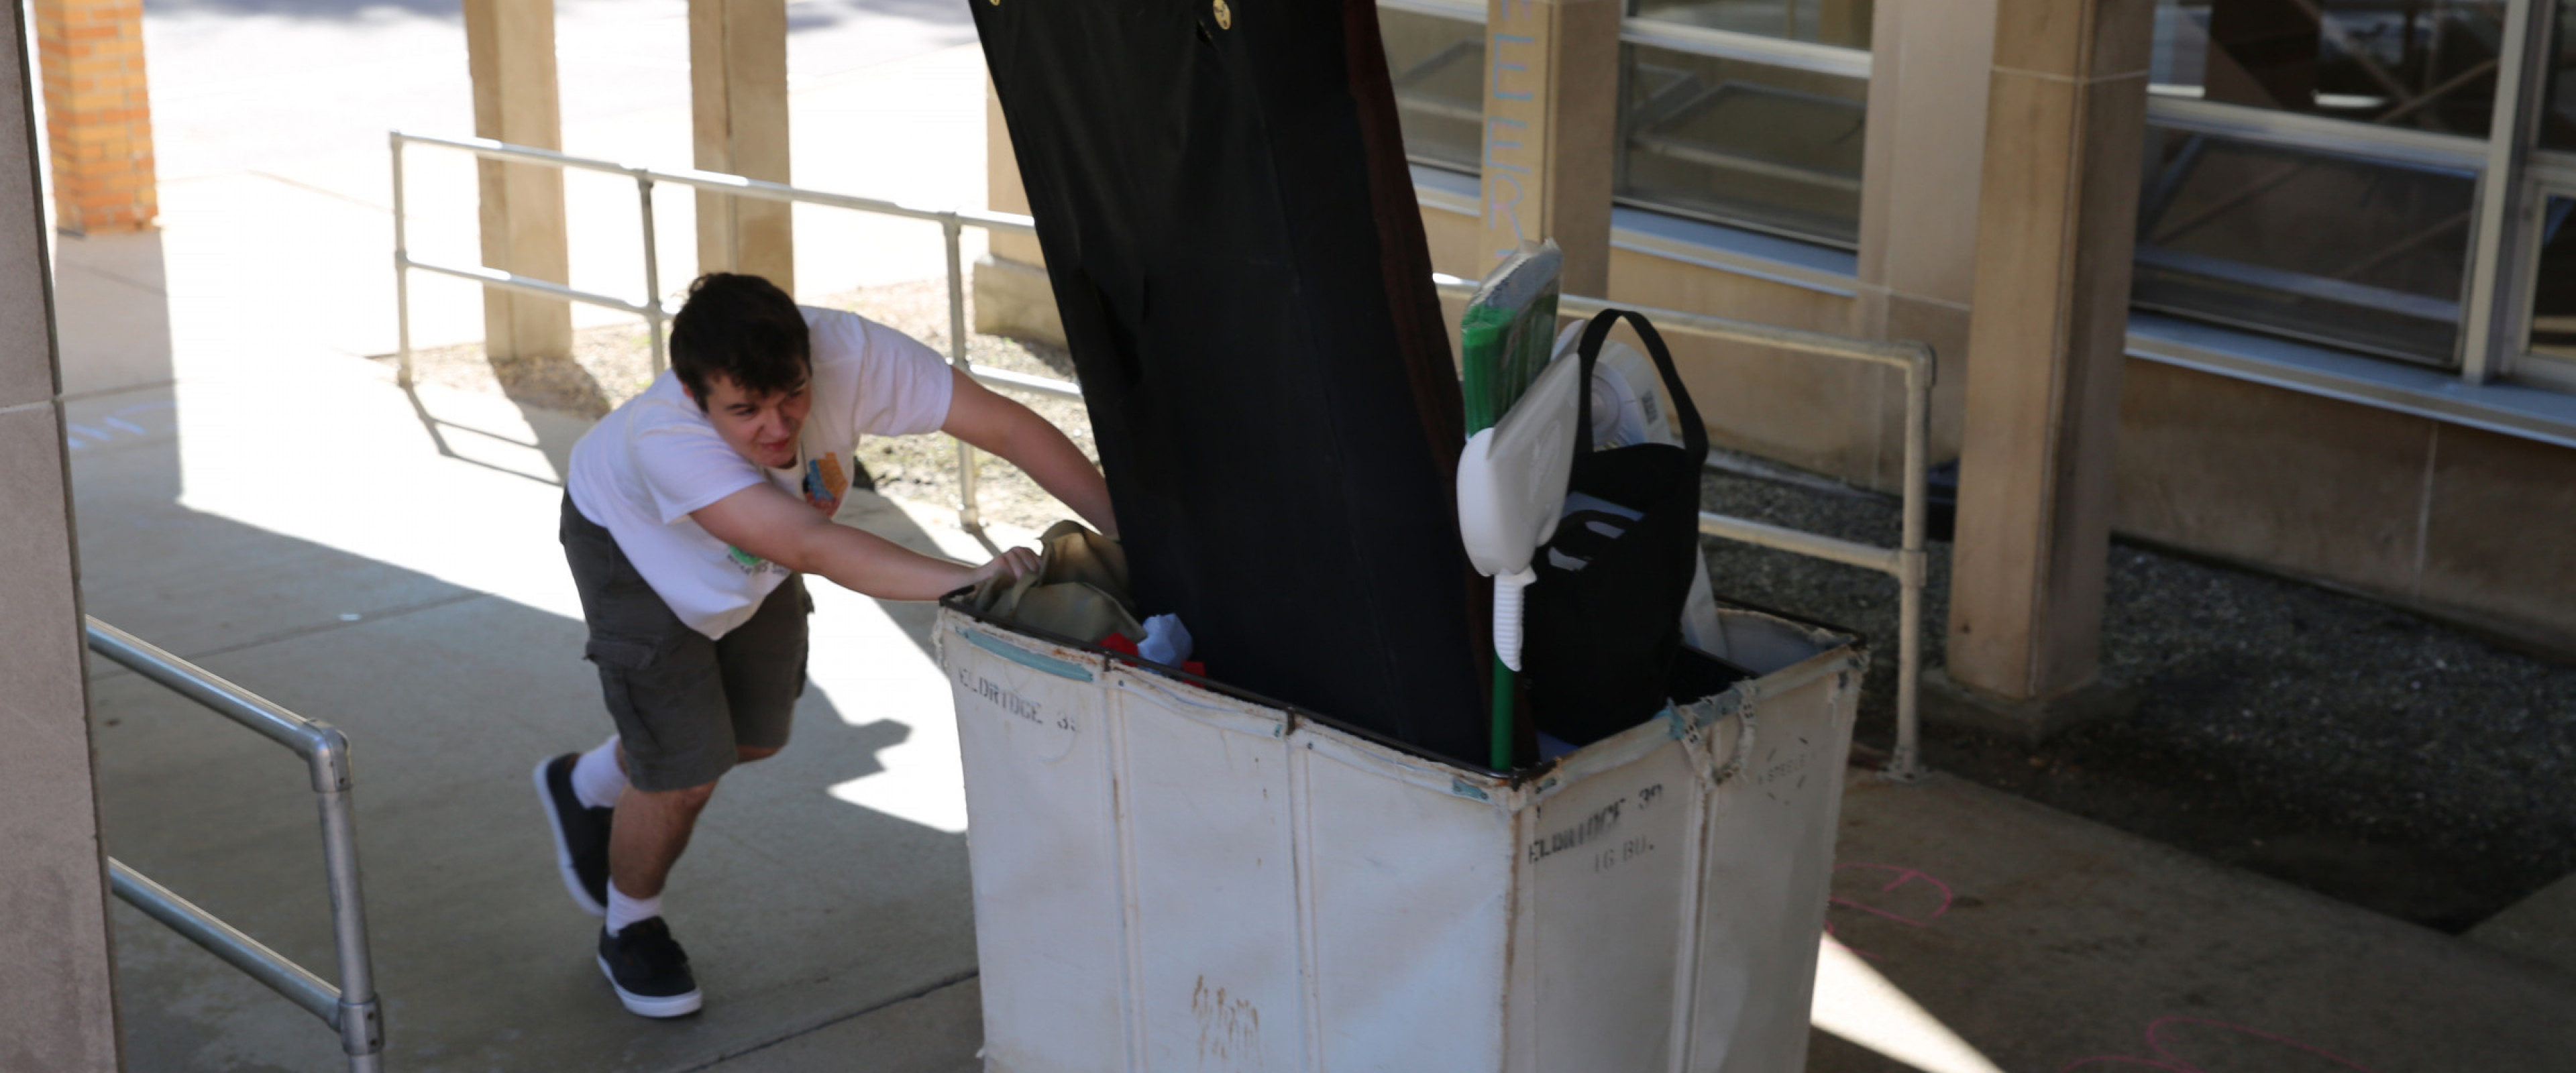 WMU Student moving-in